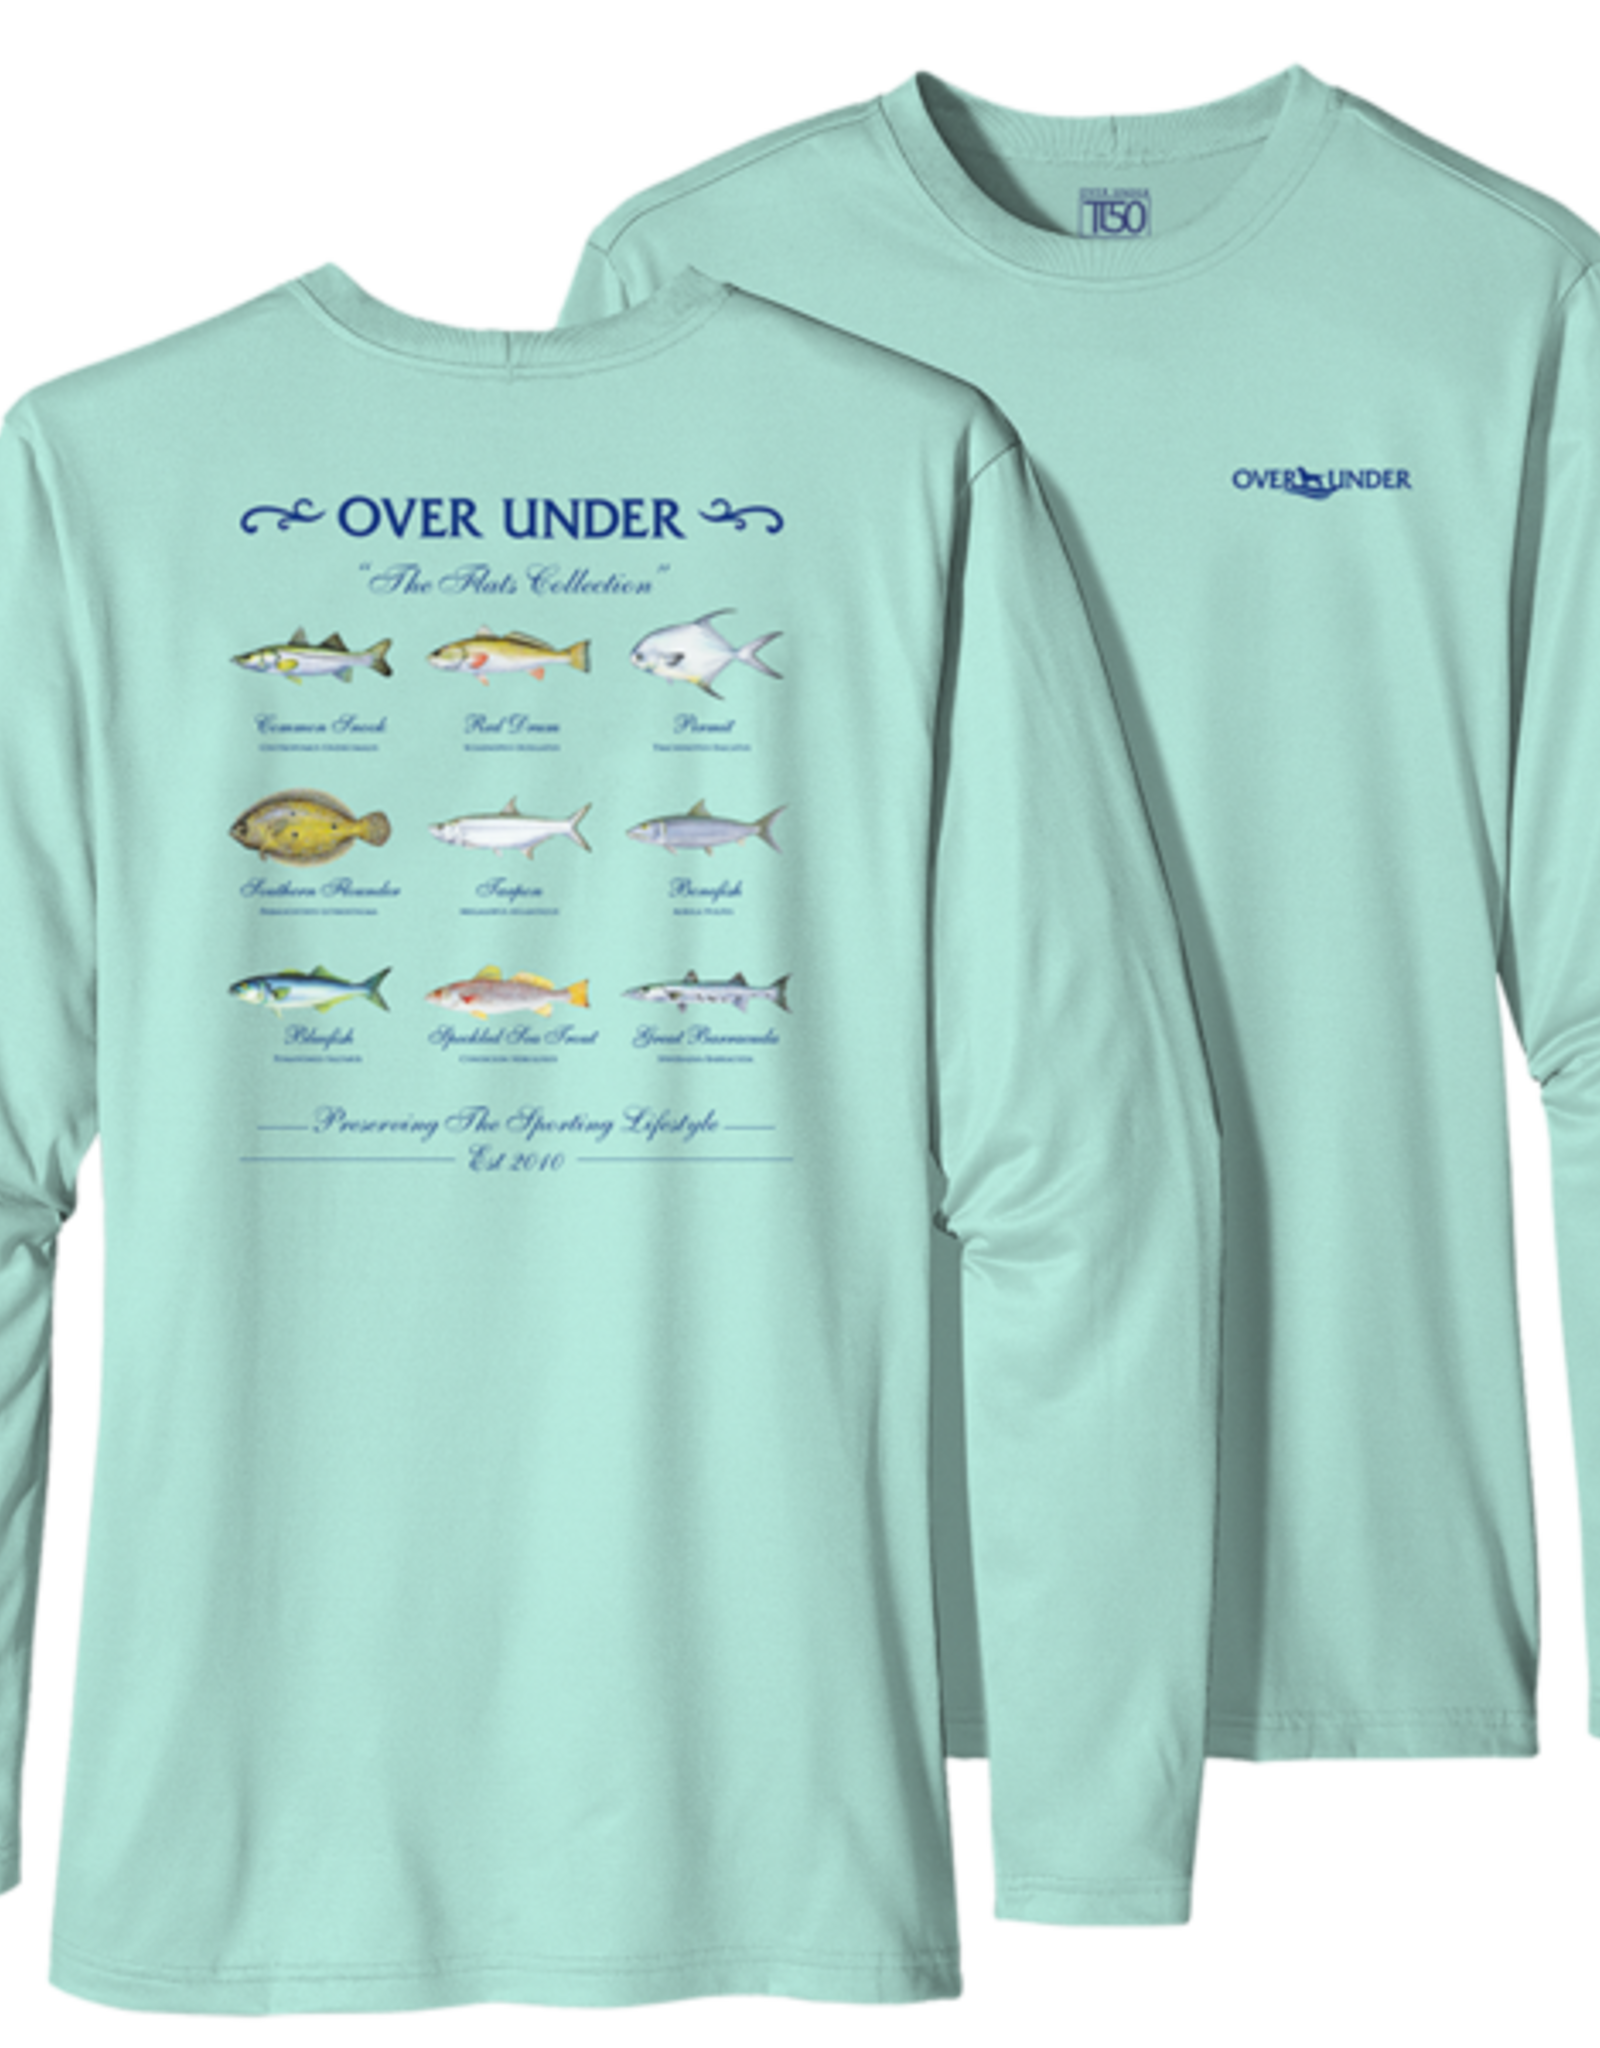 Over Under L/S Tidal Tech Flats Collection